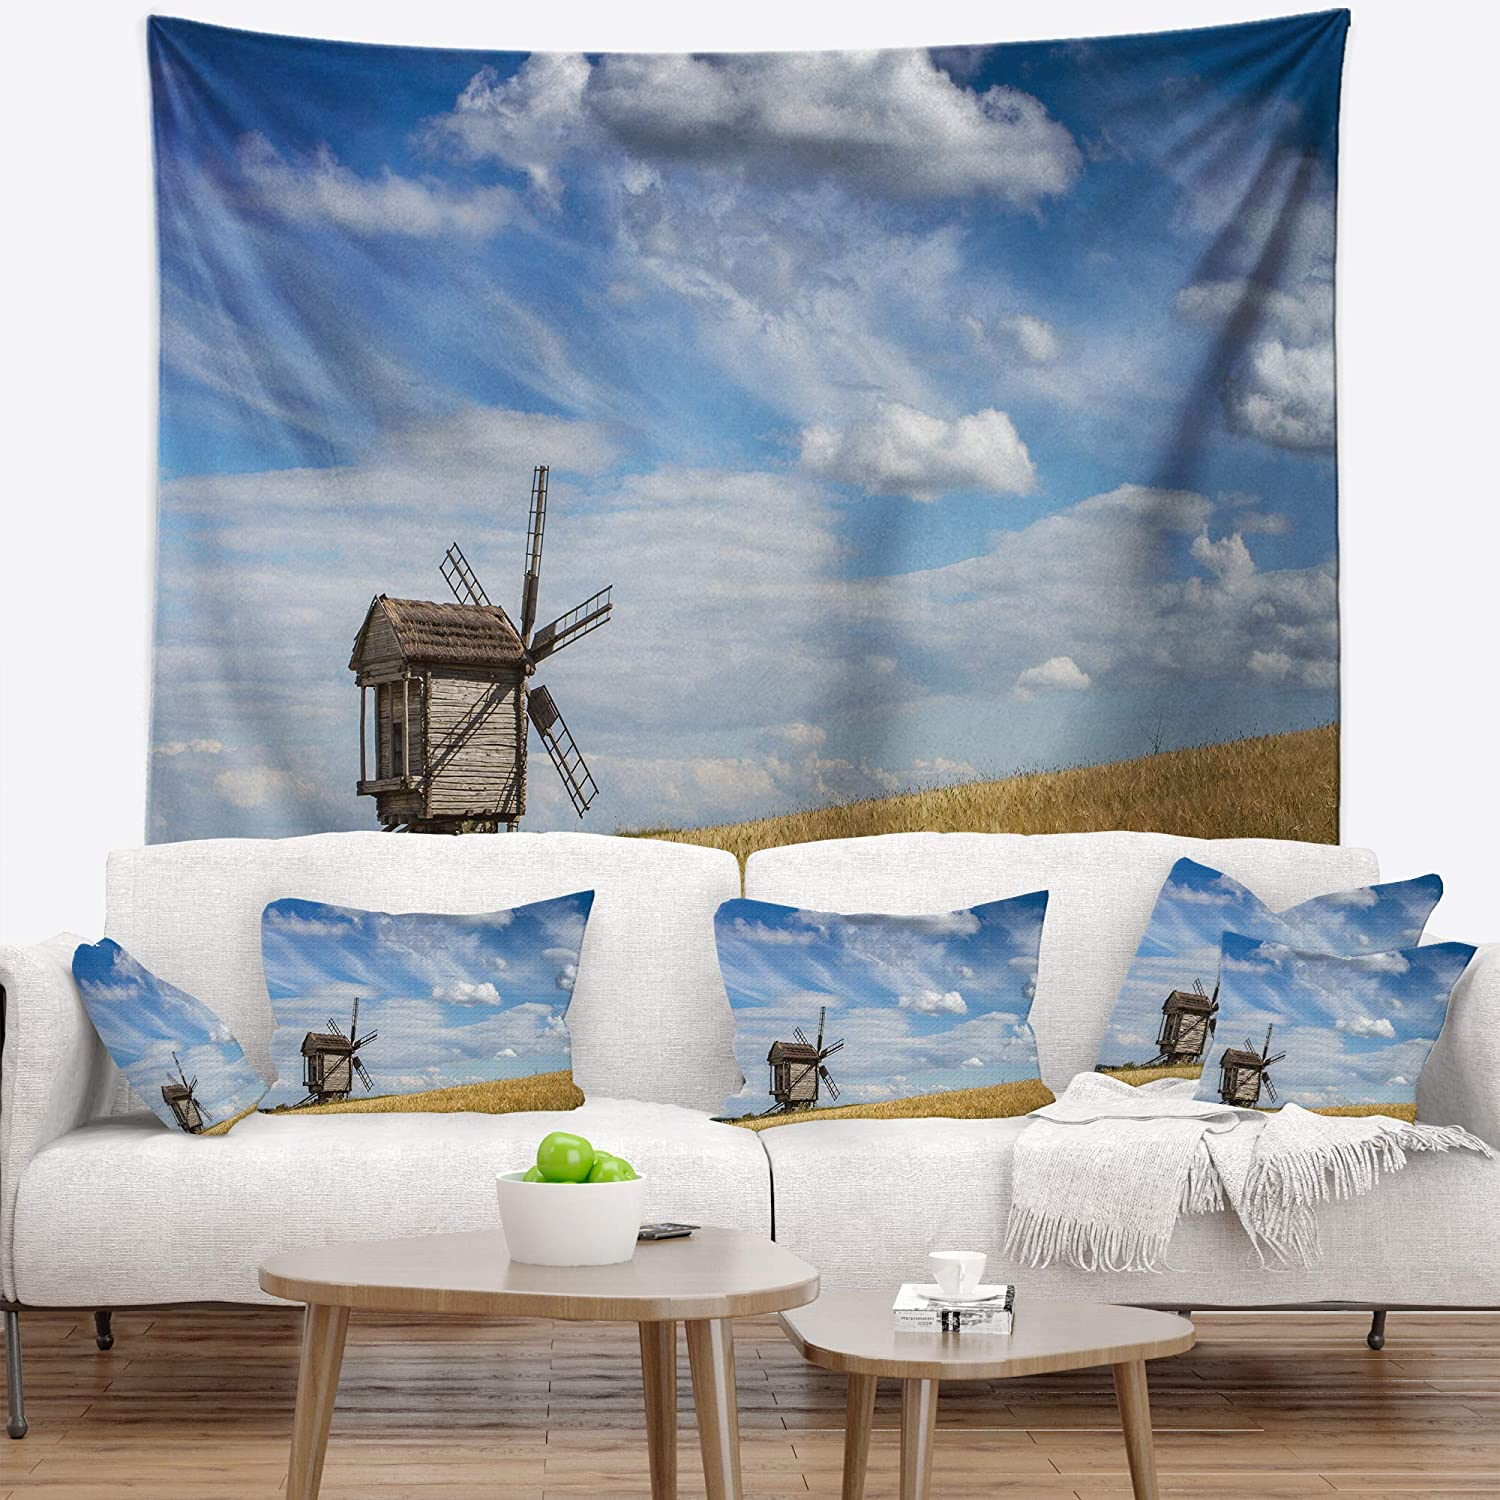 Created On Lightweight Polyester Fabric 80 in Designart TAP11219-80-68  Cloudy Sky and Windmill Summer Day Landscape Blanket D/écor Art for Home and Office Wall Tapestry x Large x 68 in